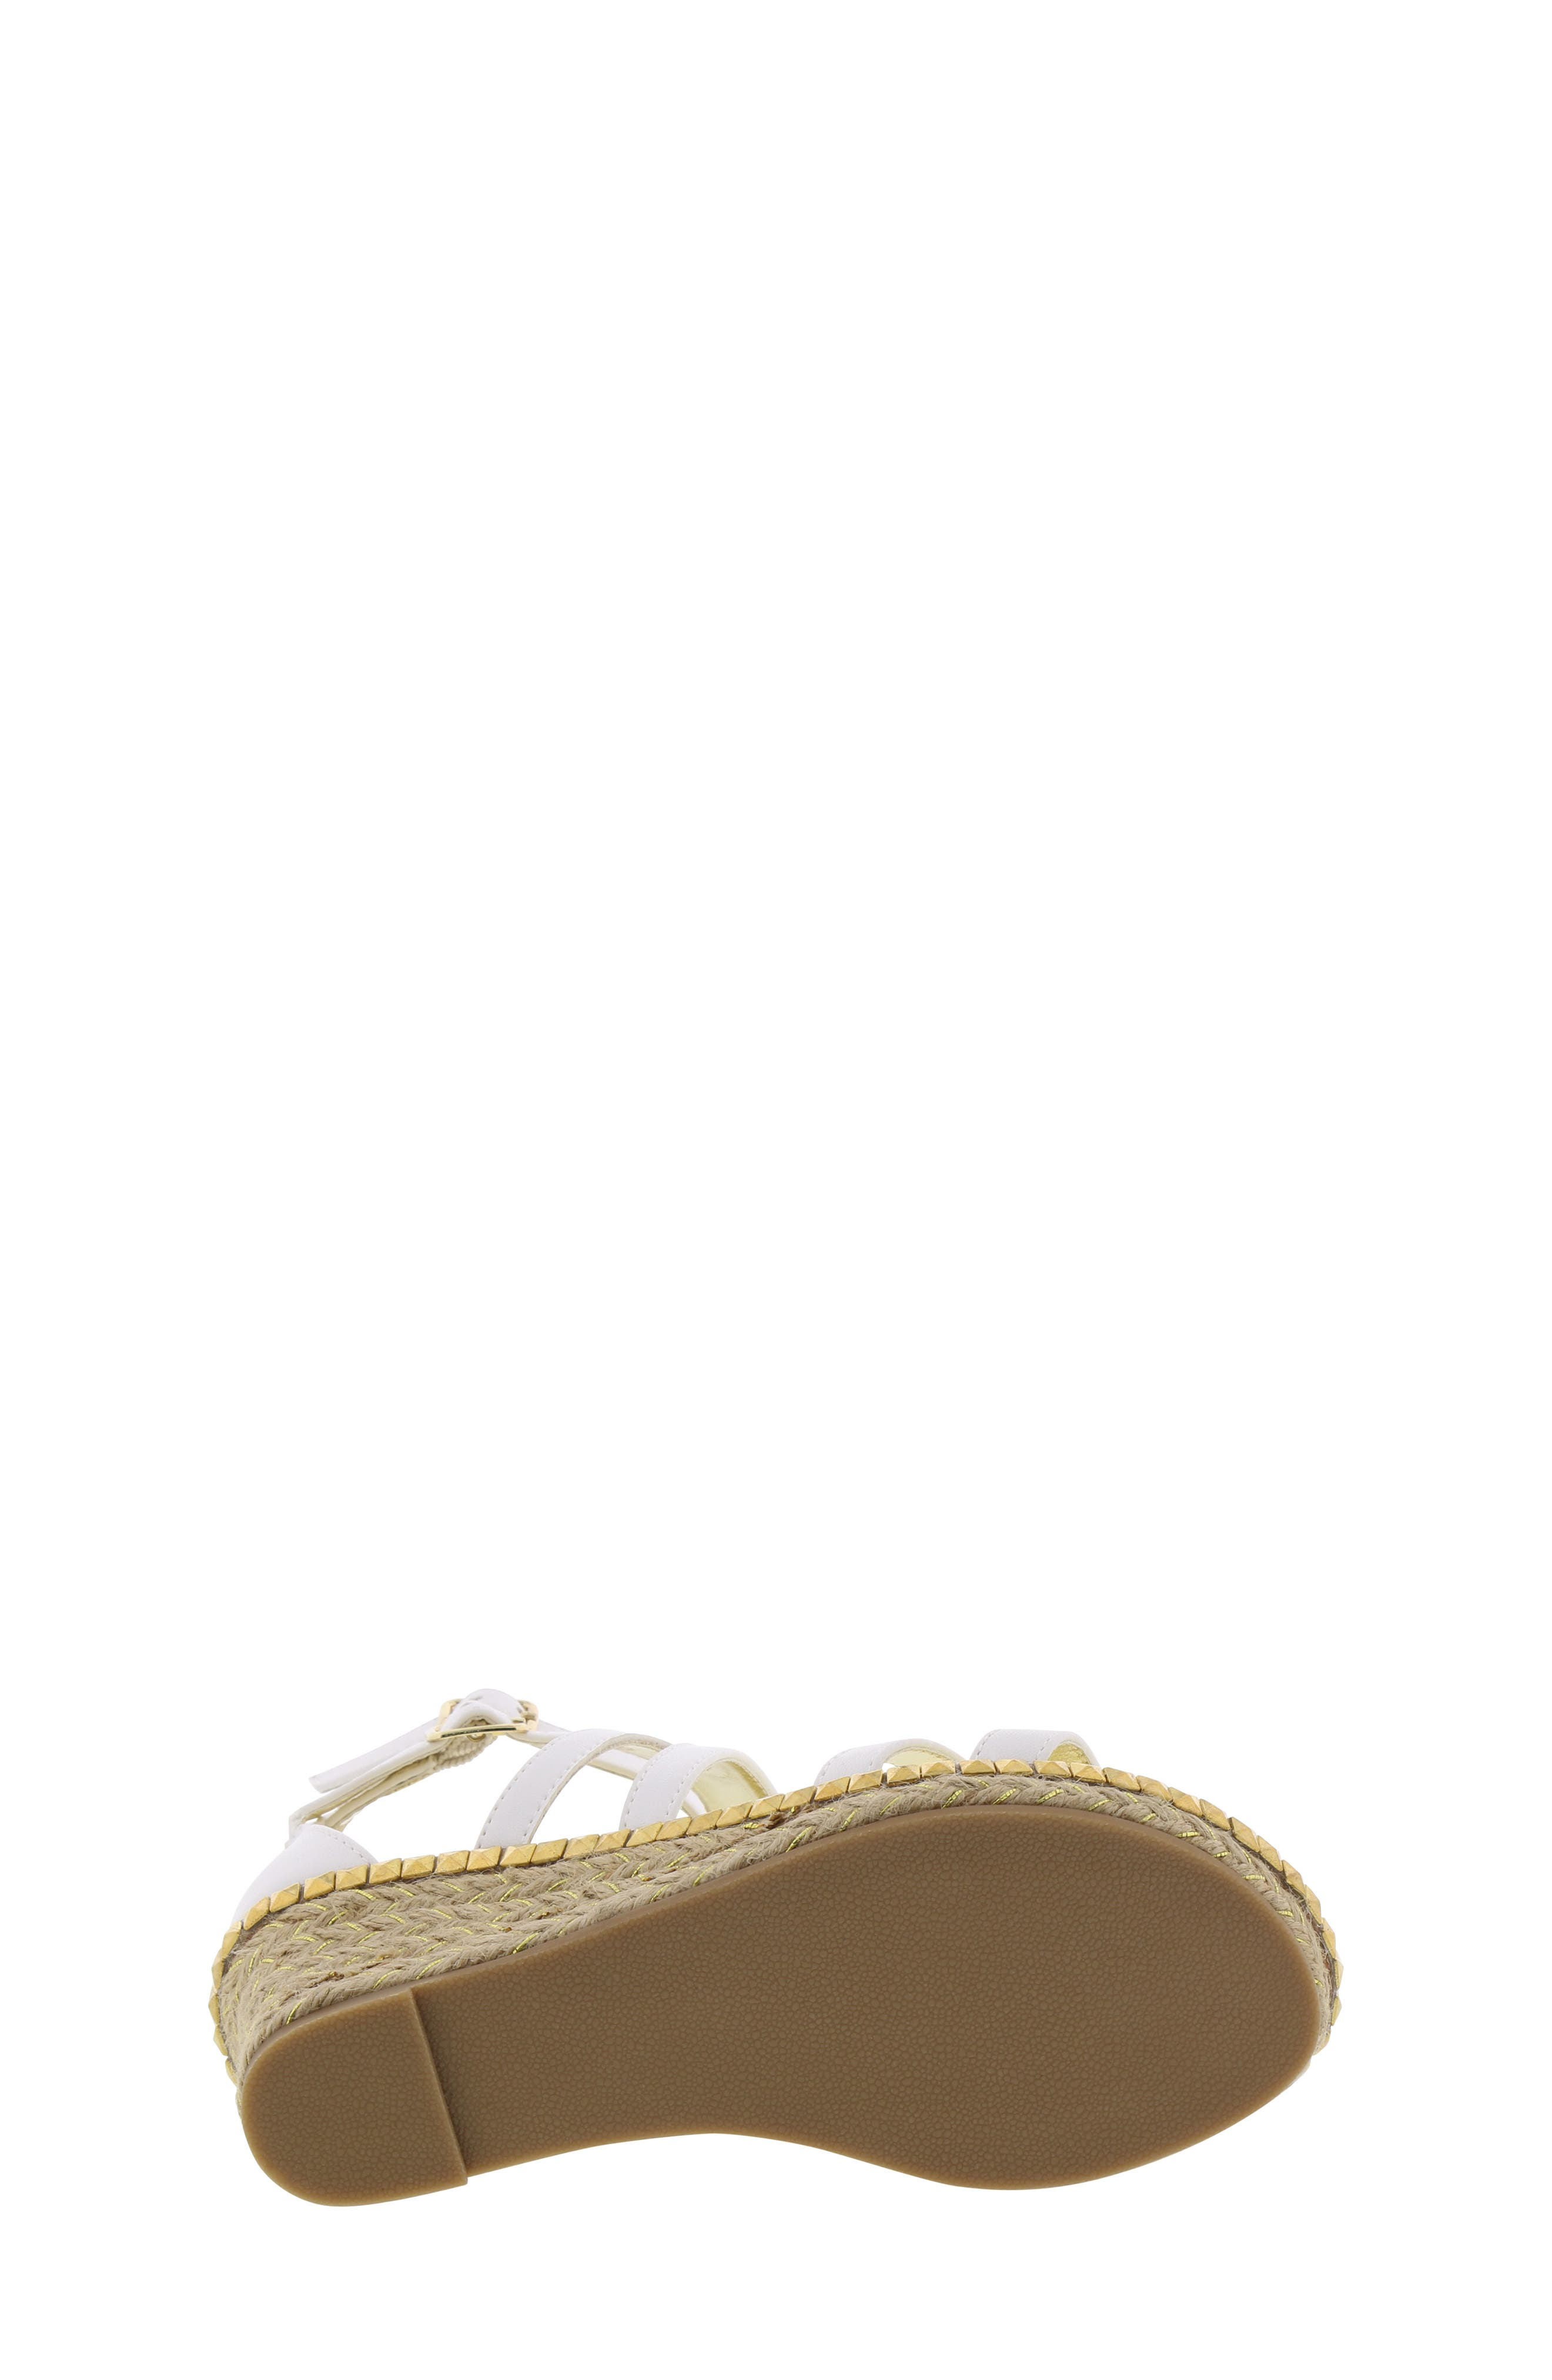 REACTION KENNETH COLE, Reed Splash Wedge Sandal, Alternate thumbnail 6, color, WHITE